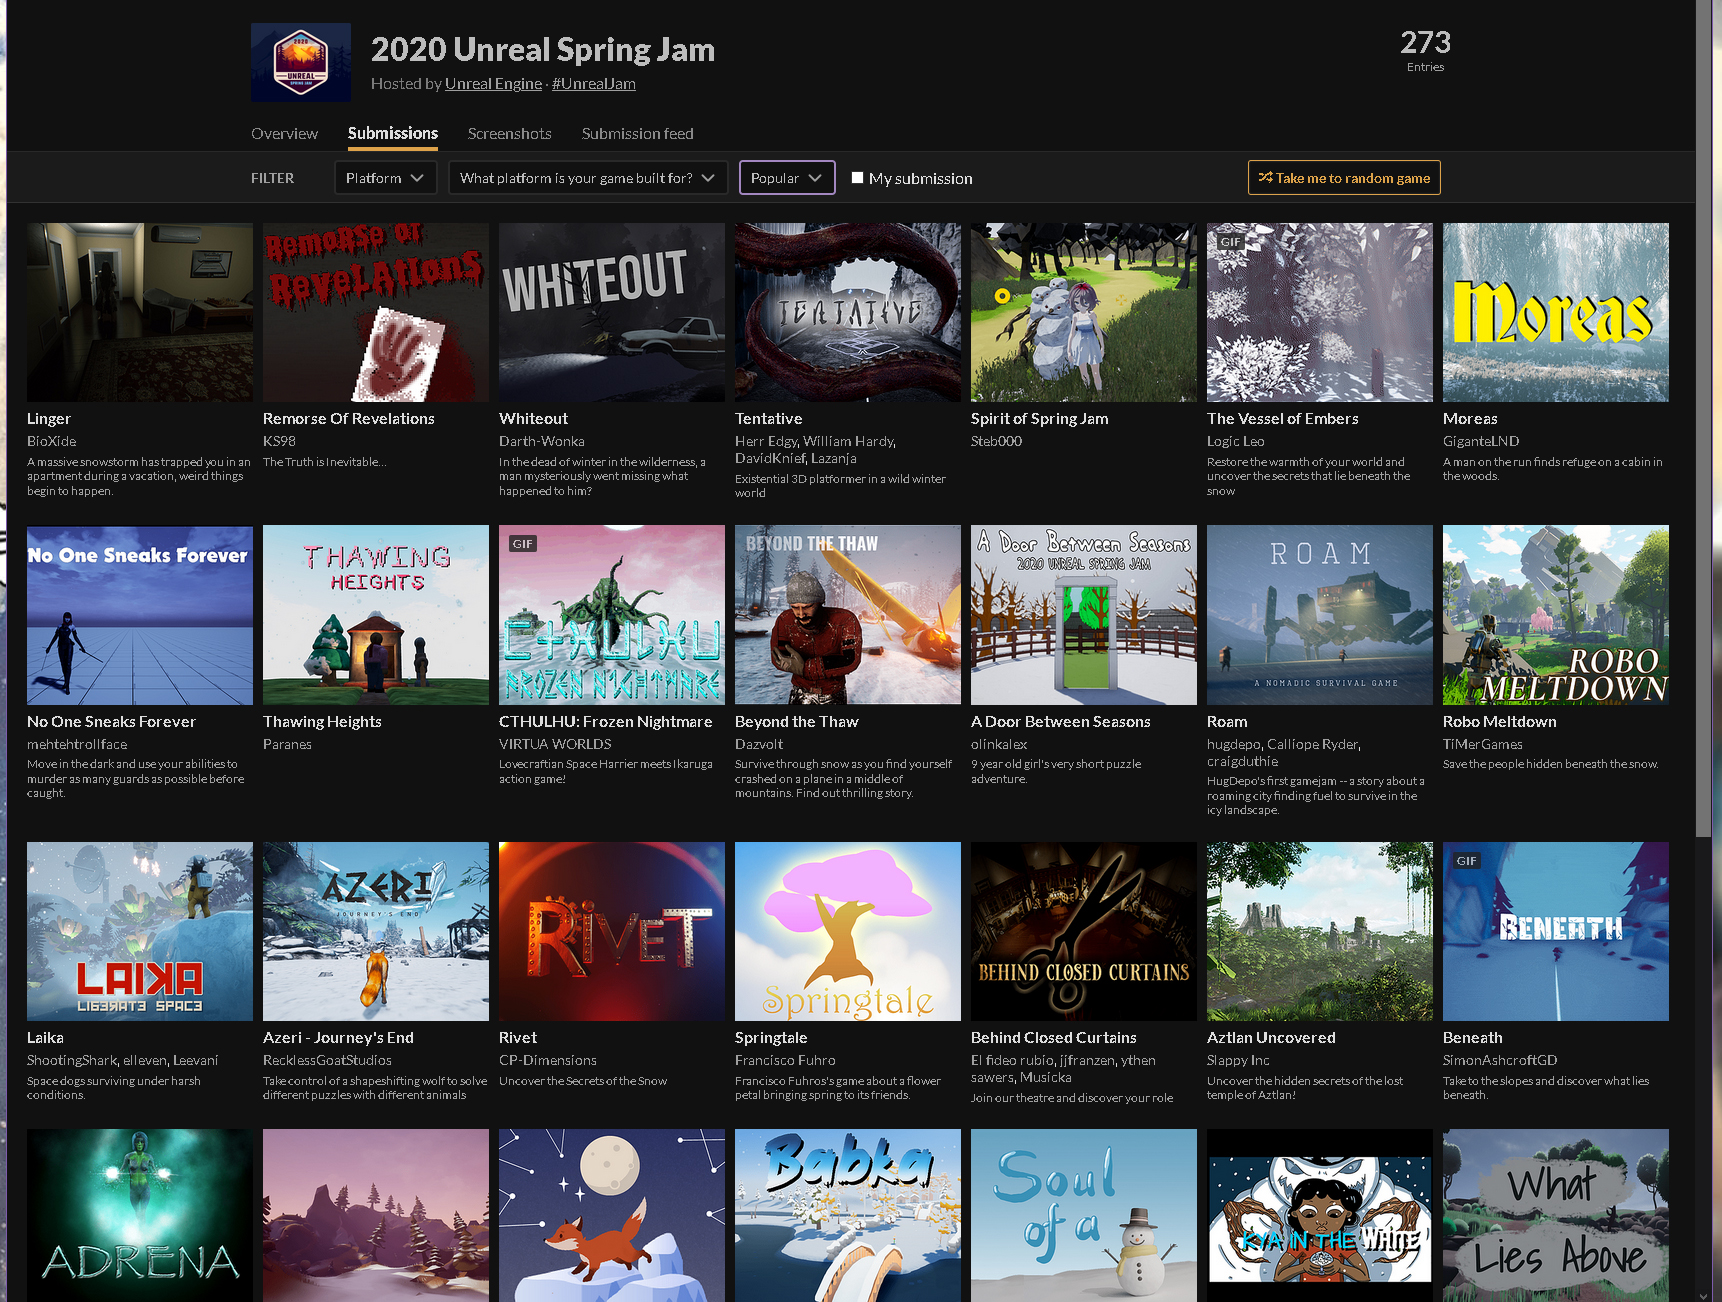 CTHULHU: Frozen Nightmare, Top 10 Popular on Unreal Spring Jam